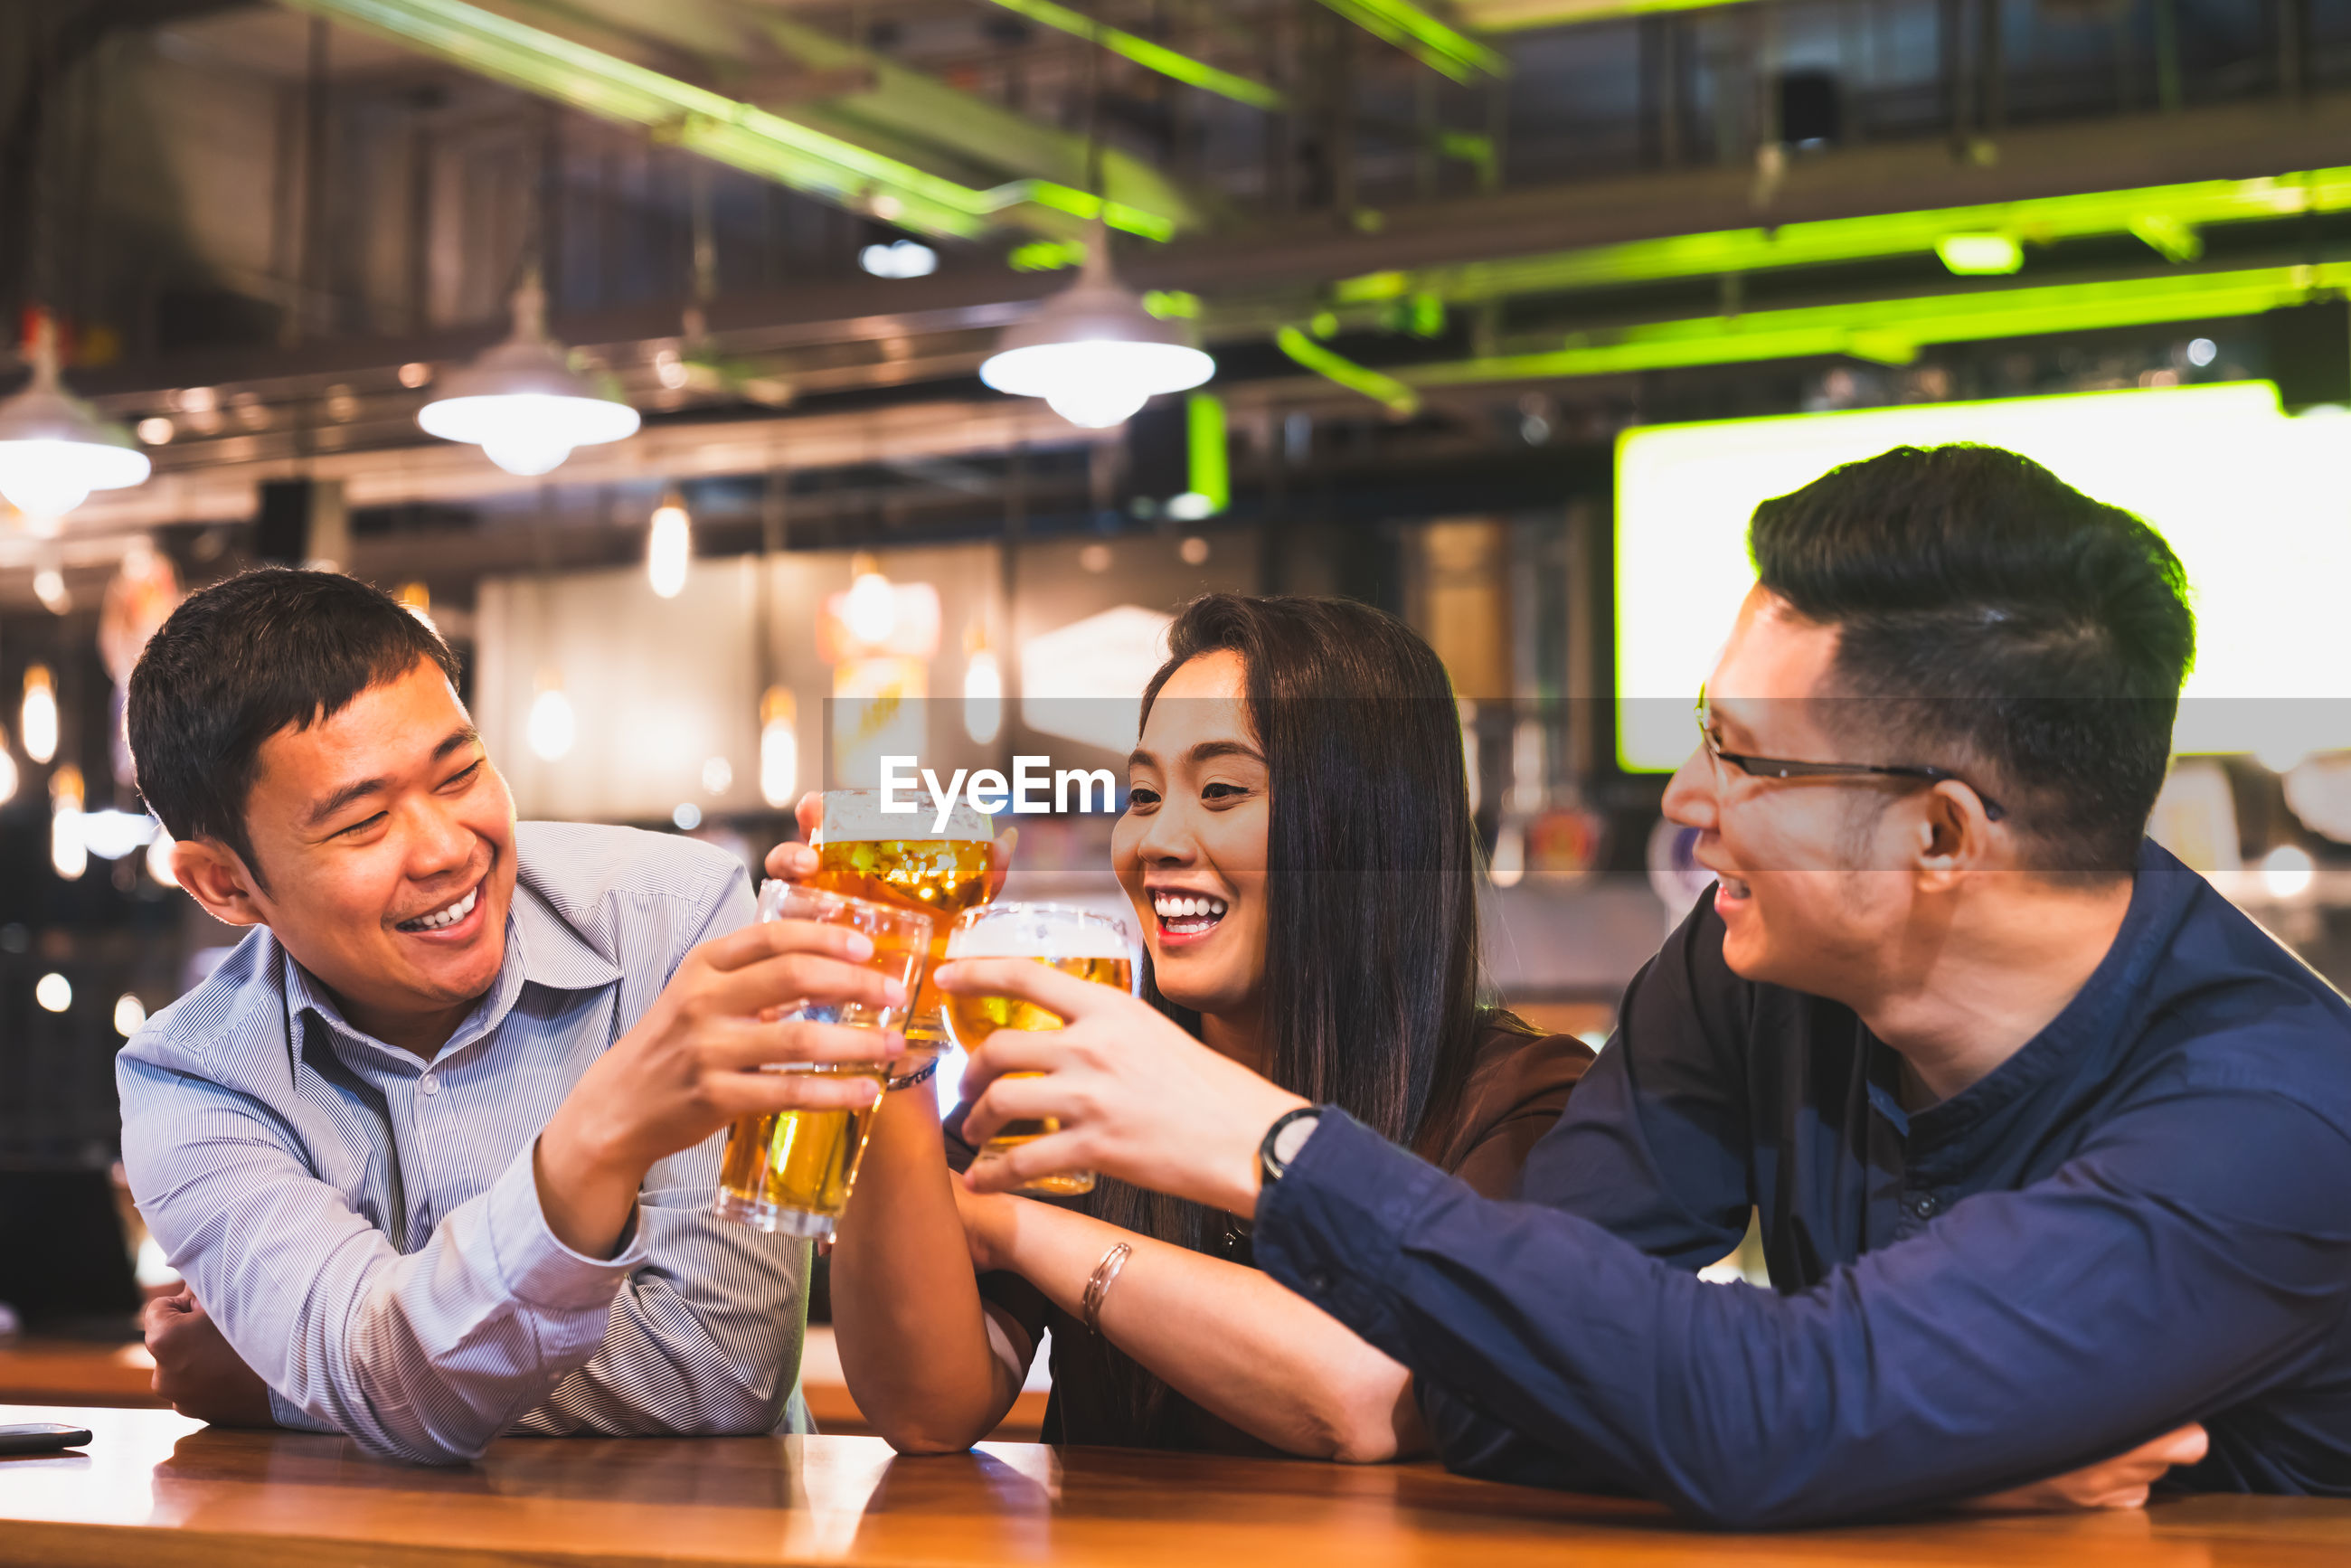 Friends toasting beer glasses while sitting in bar